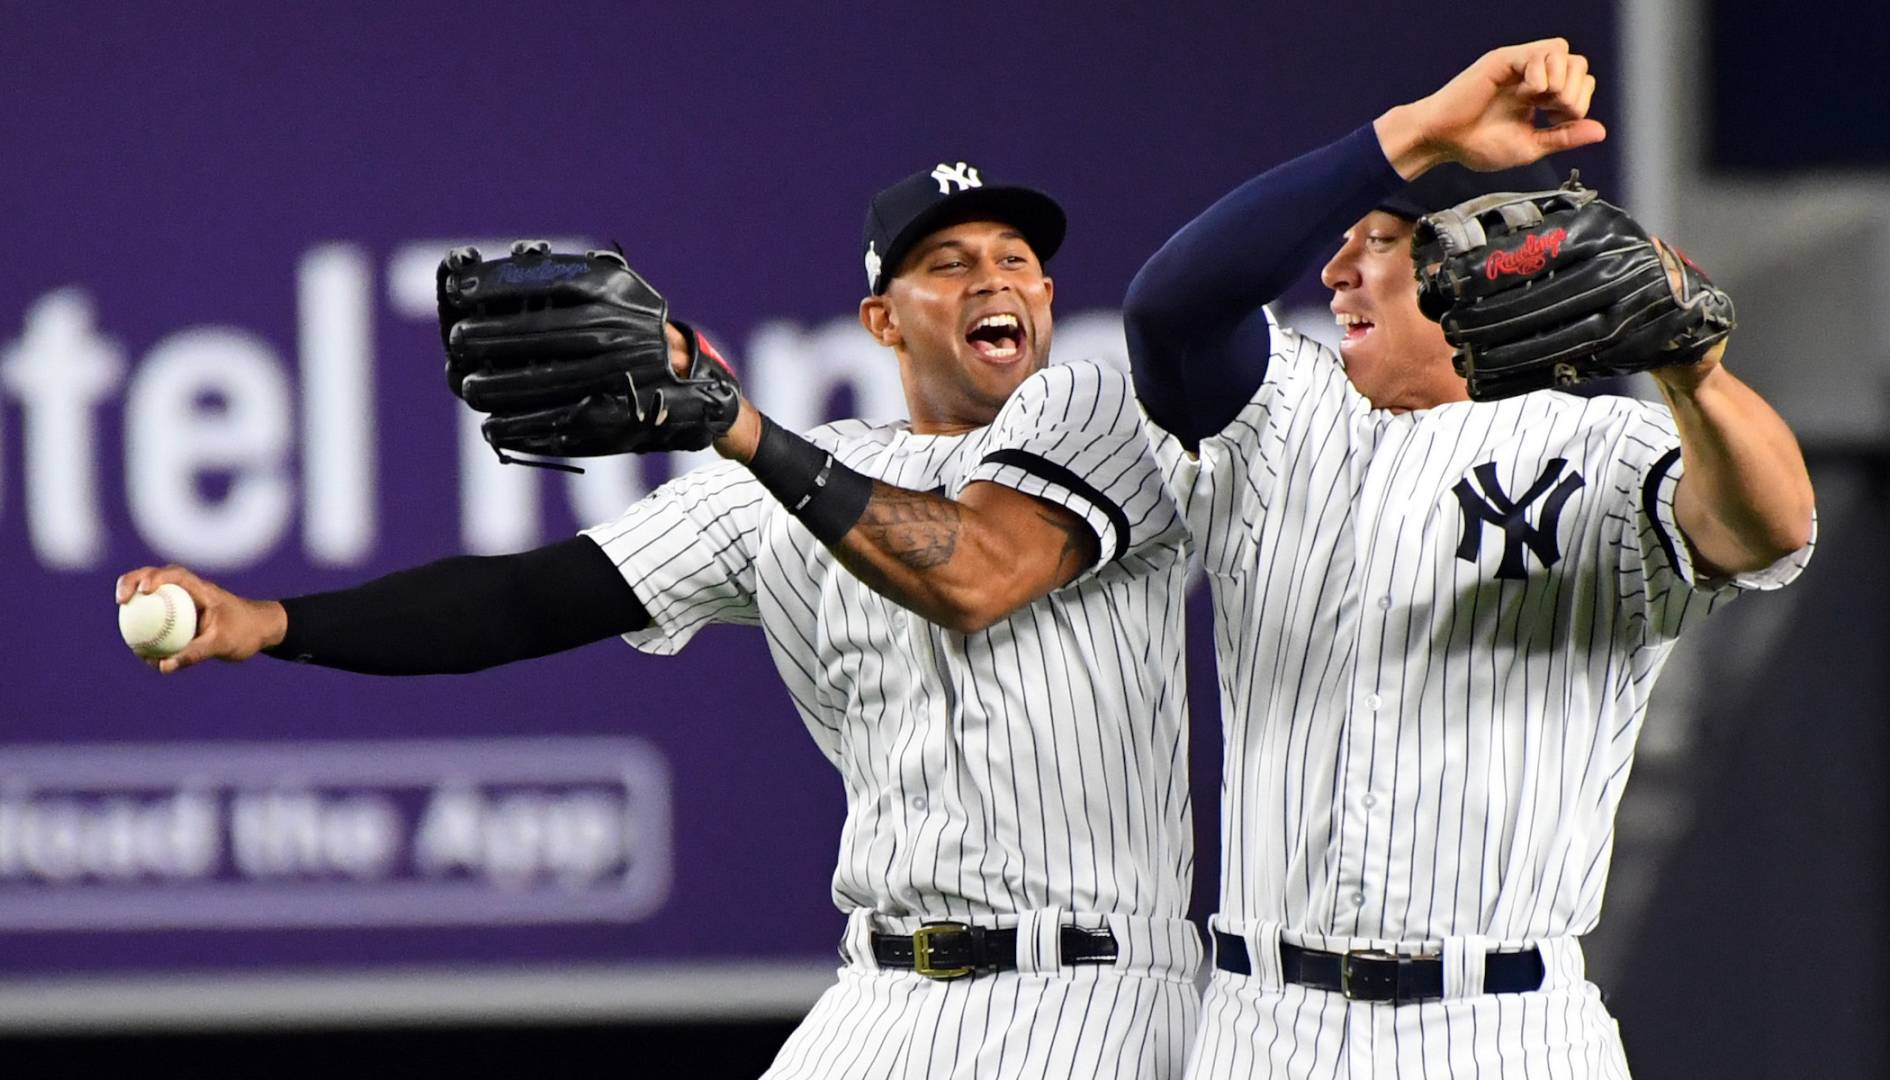 New York Yankees Invest In Esports With New Strategic Partnership